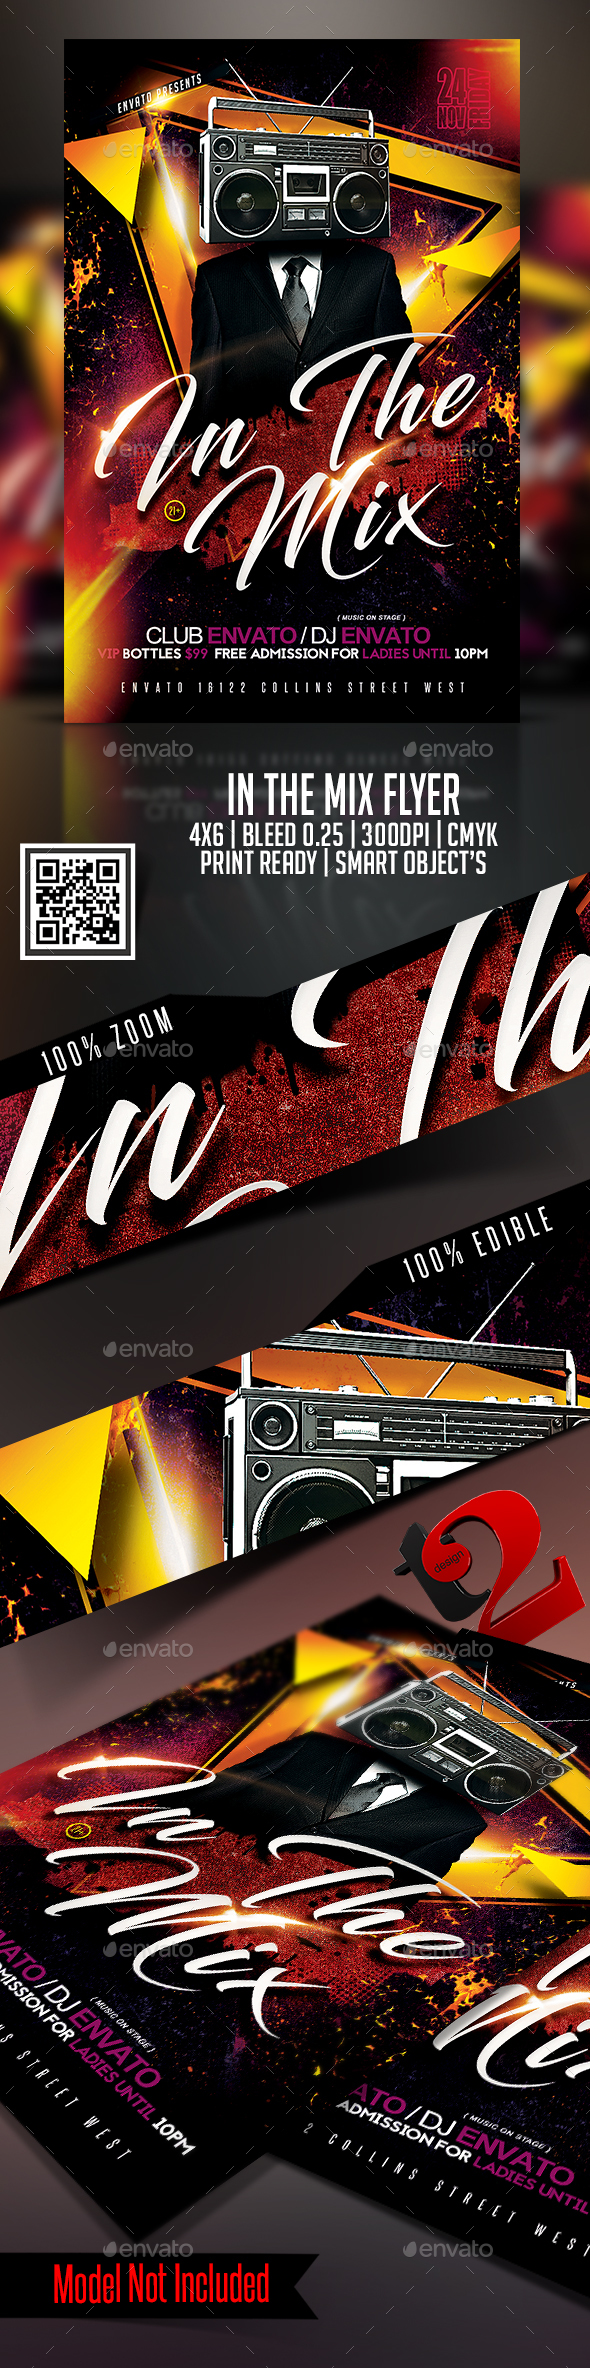 In The Mix Flyer Templates - Clubs & Parties Events